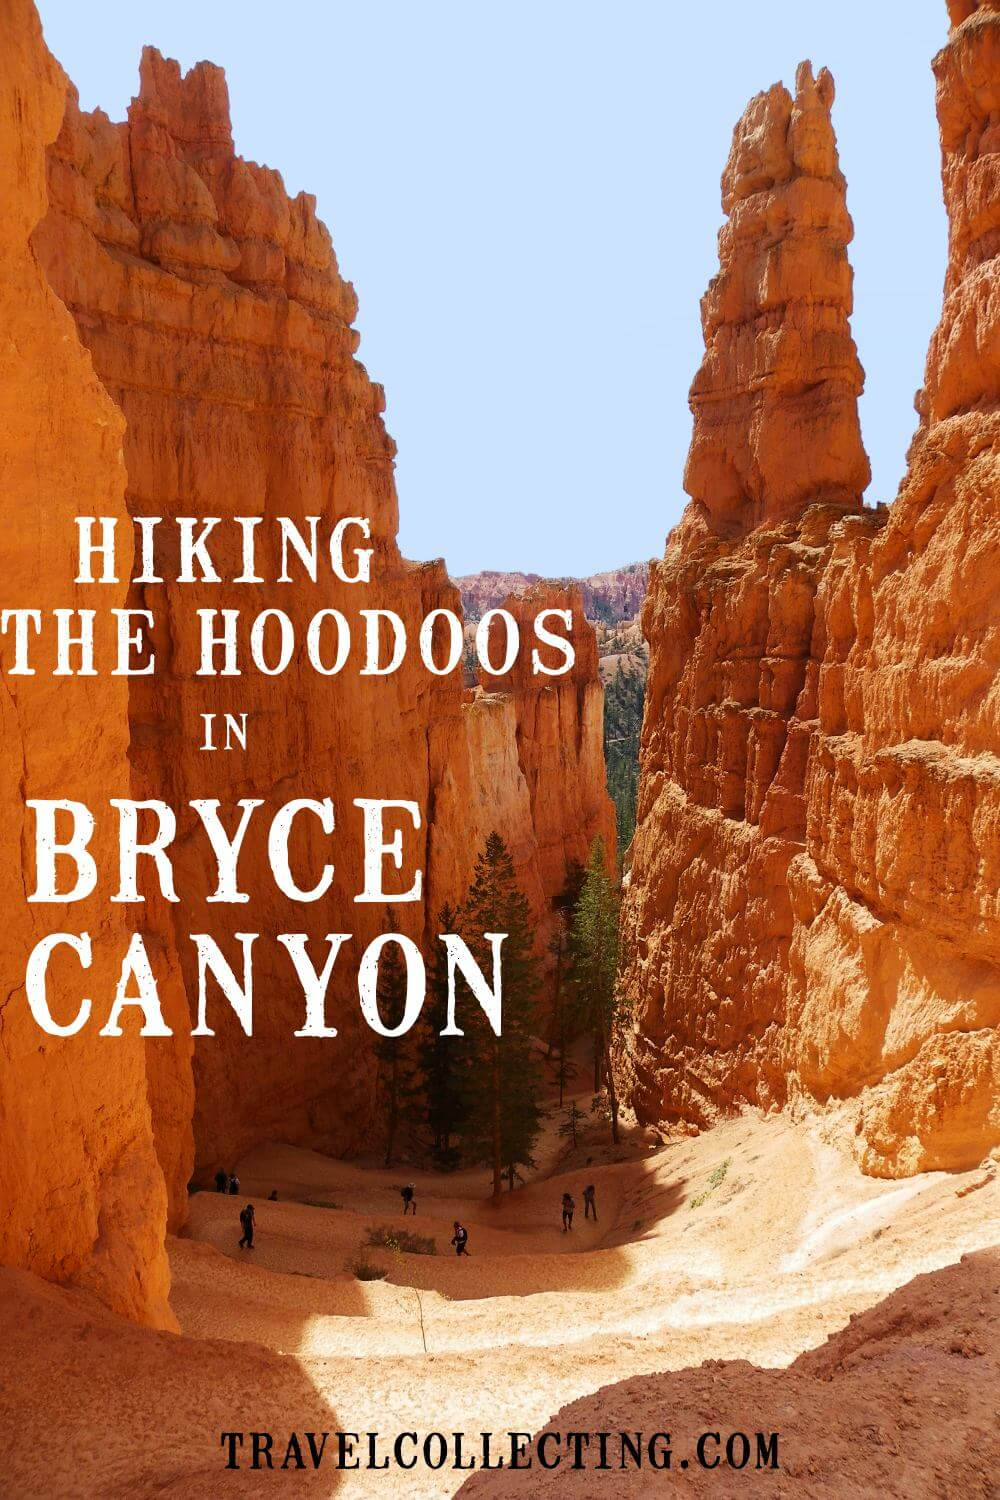 Hiking the Hoodoos in bryce canyon np